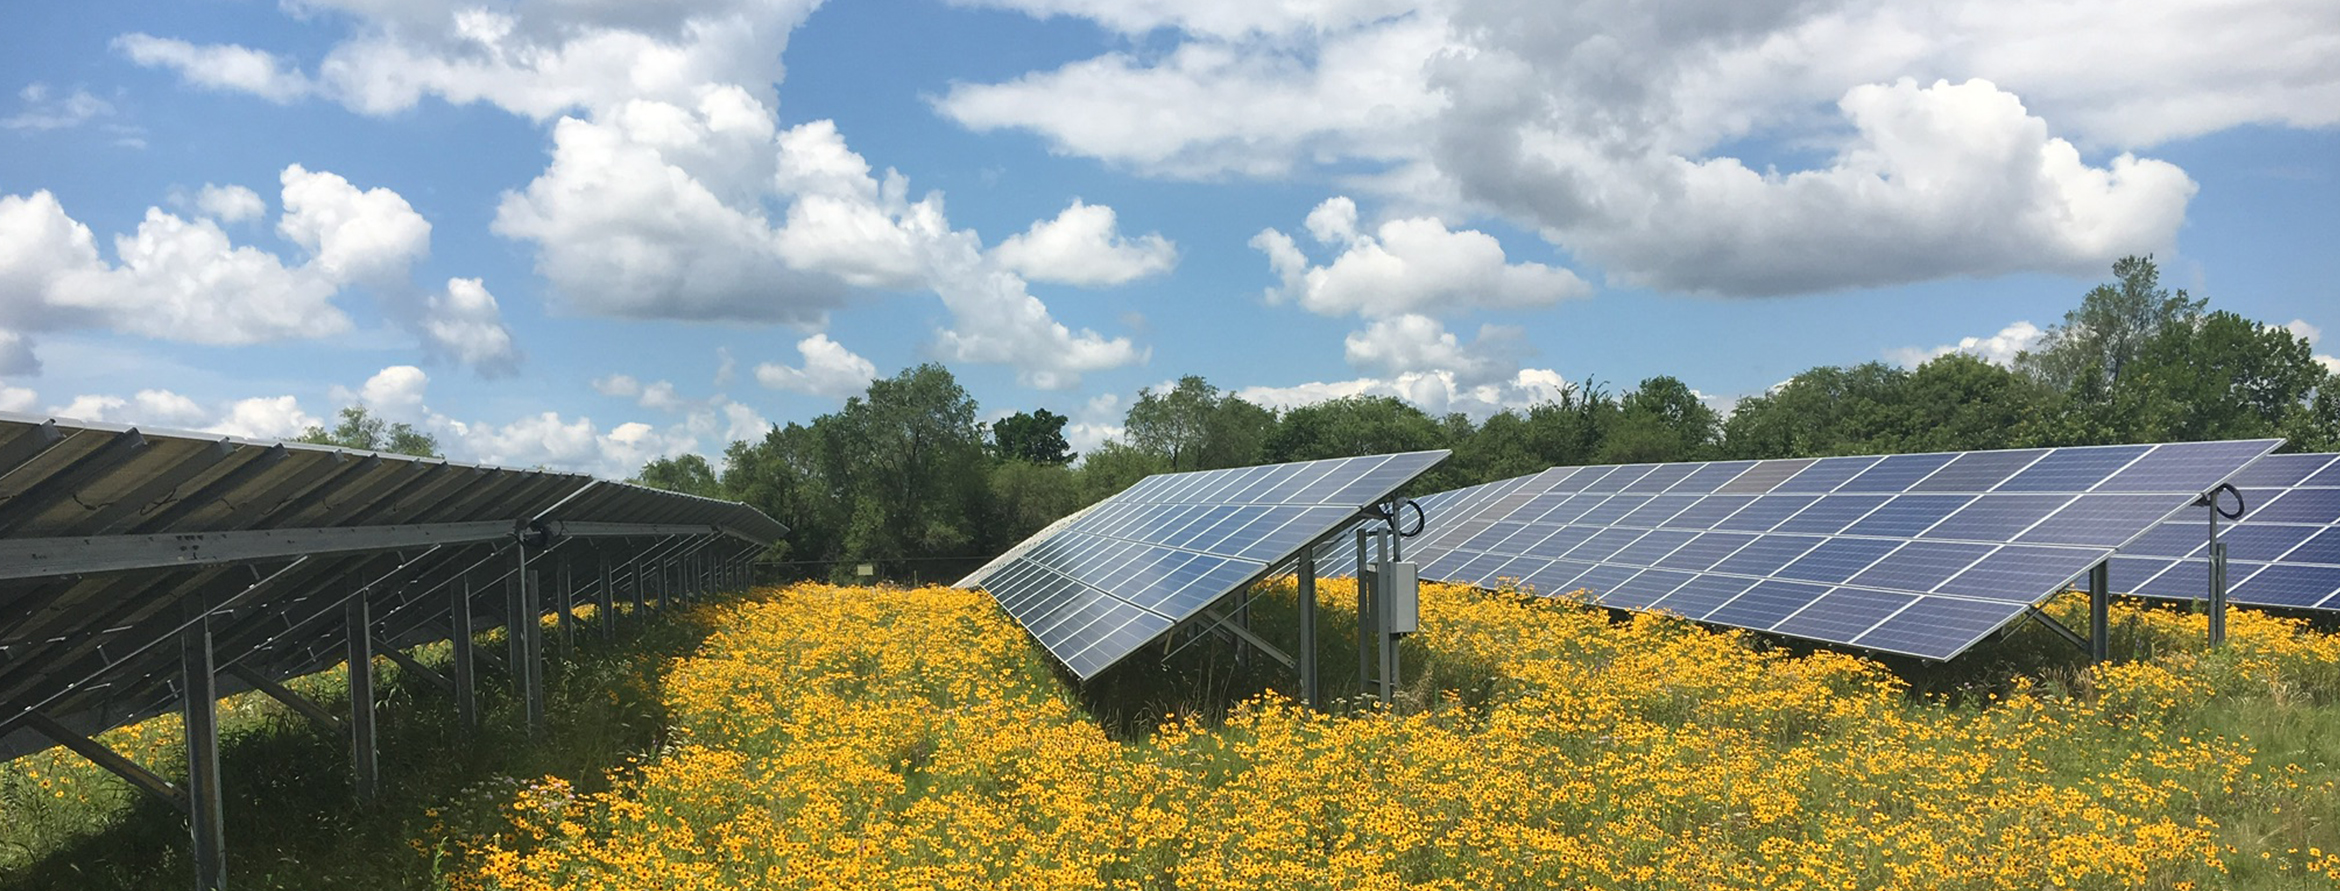 Solar panels with yellow pollinator species